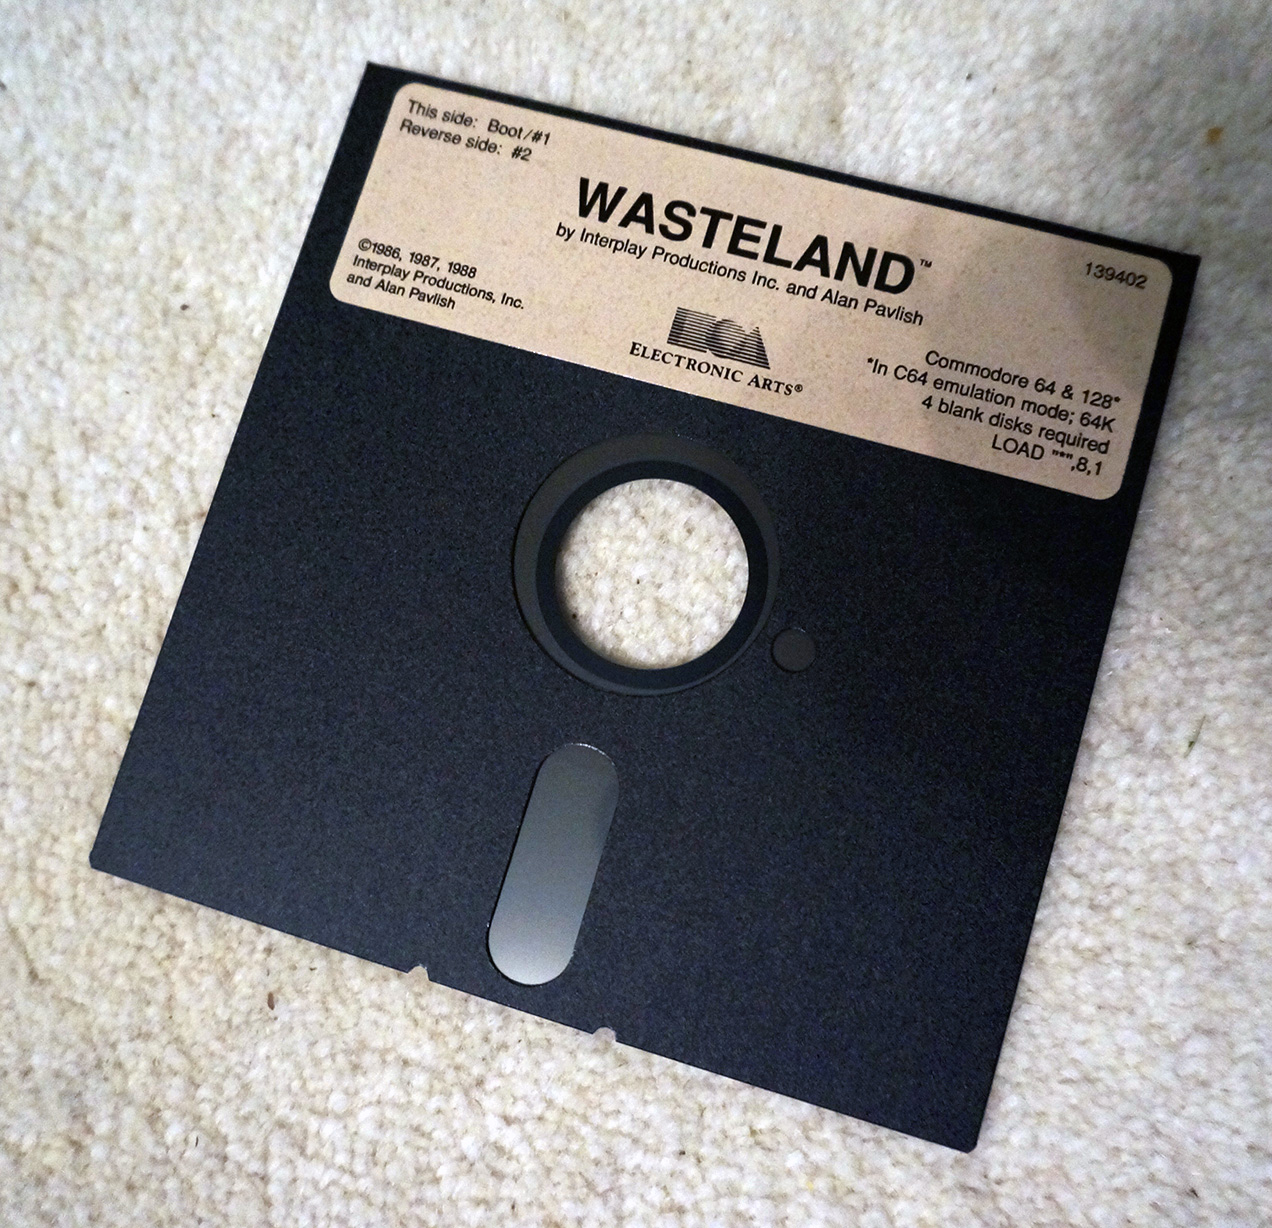 The original C64 Boot-Disk of Wasteland